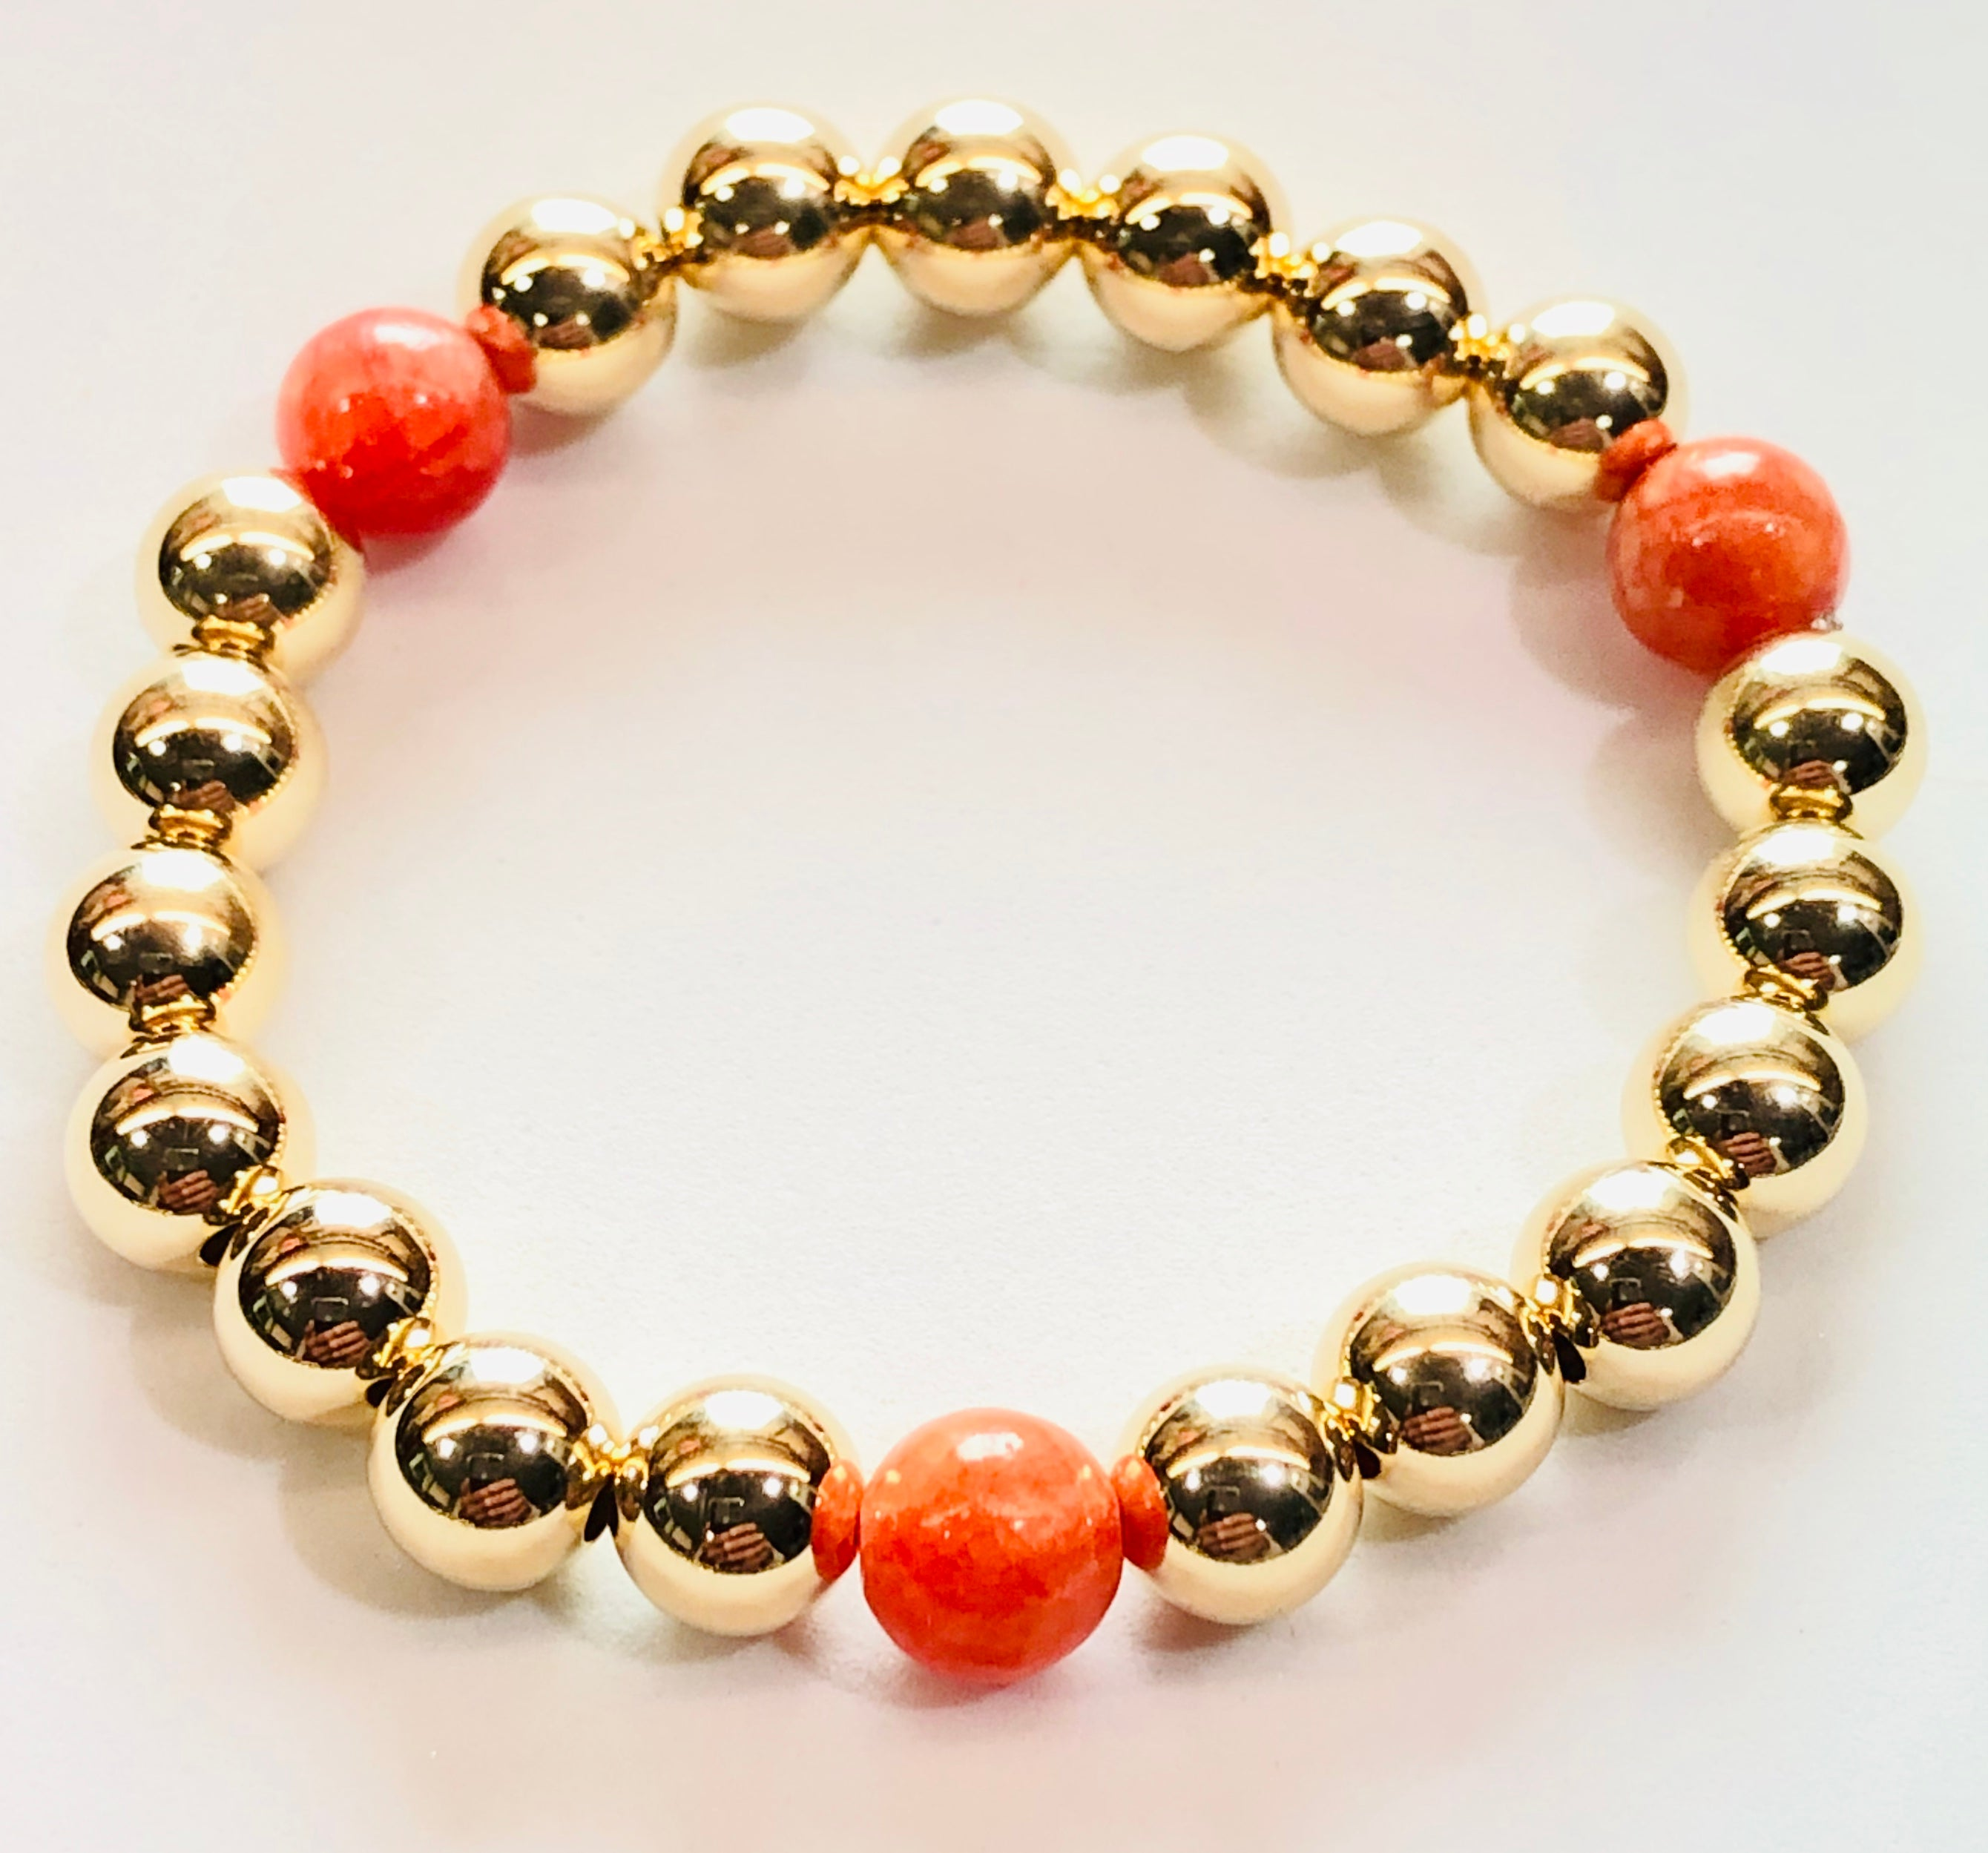 8mm 14kt Gold Filled Bead Bracelet with 3 8mm Orange Jade Beads